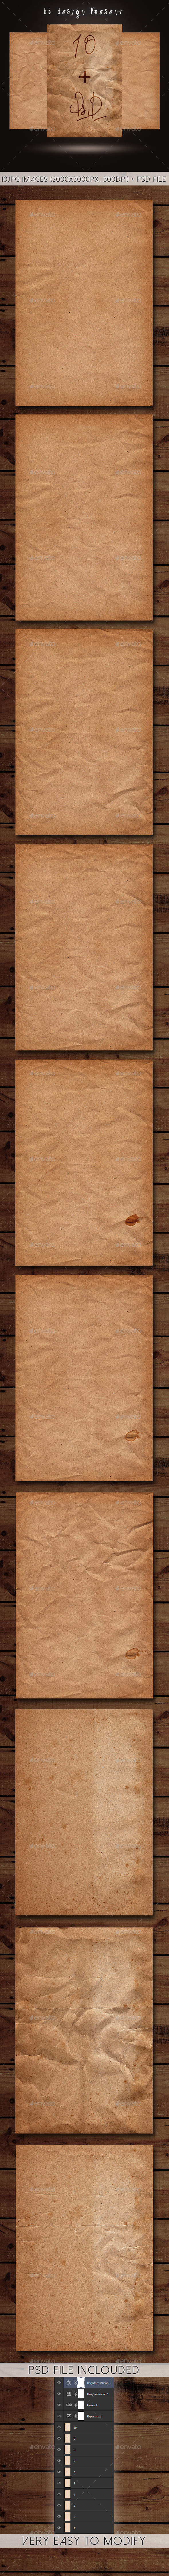 GraphicRiver 10 Old Paper Textures & PSD File 9117133